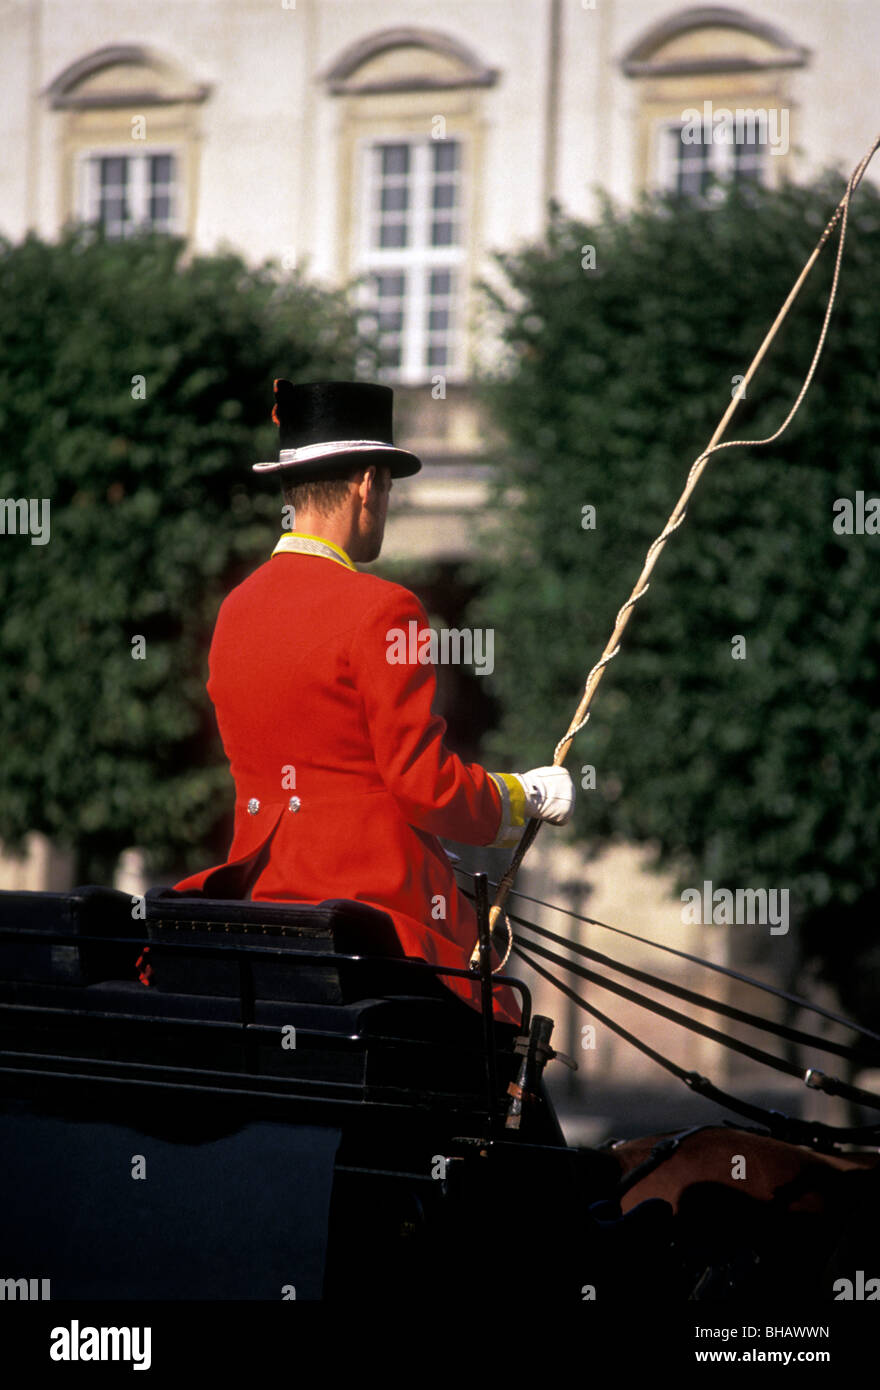 horse-carriage driver, Christiansborg Palace, Copenhagen, Denmark, Europe - Stock Image